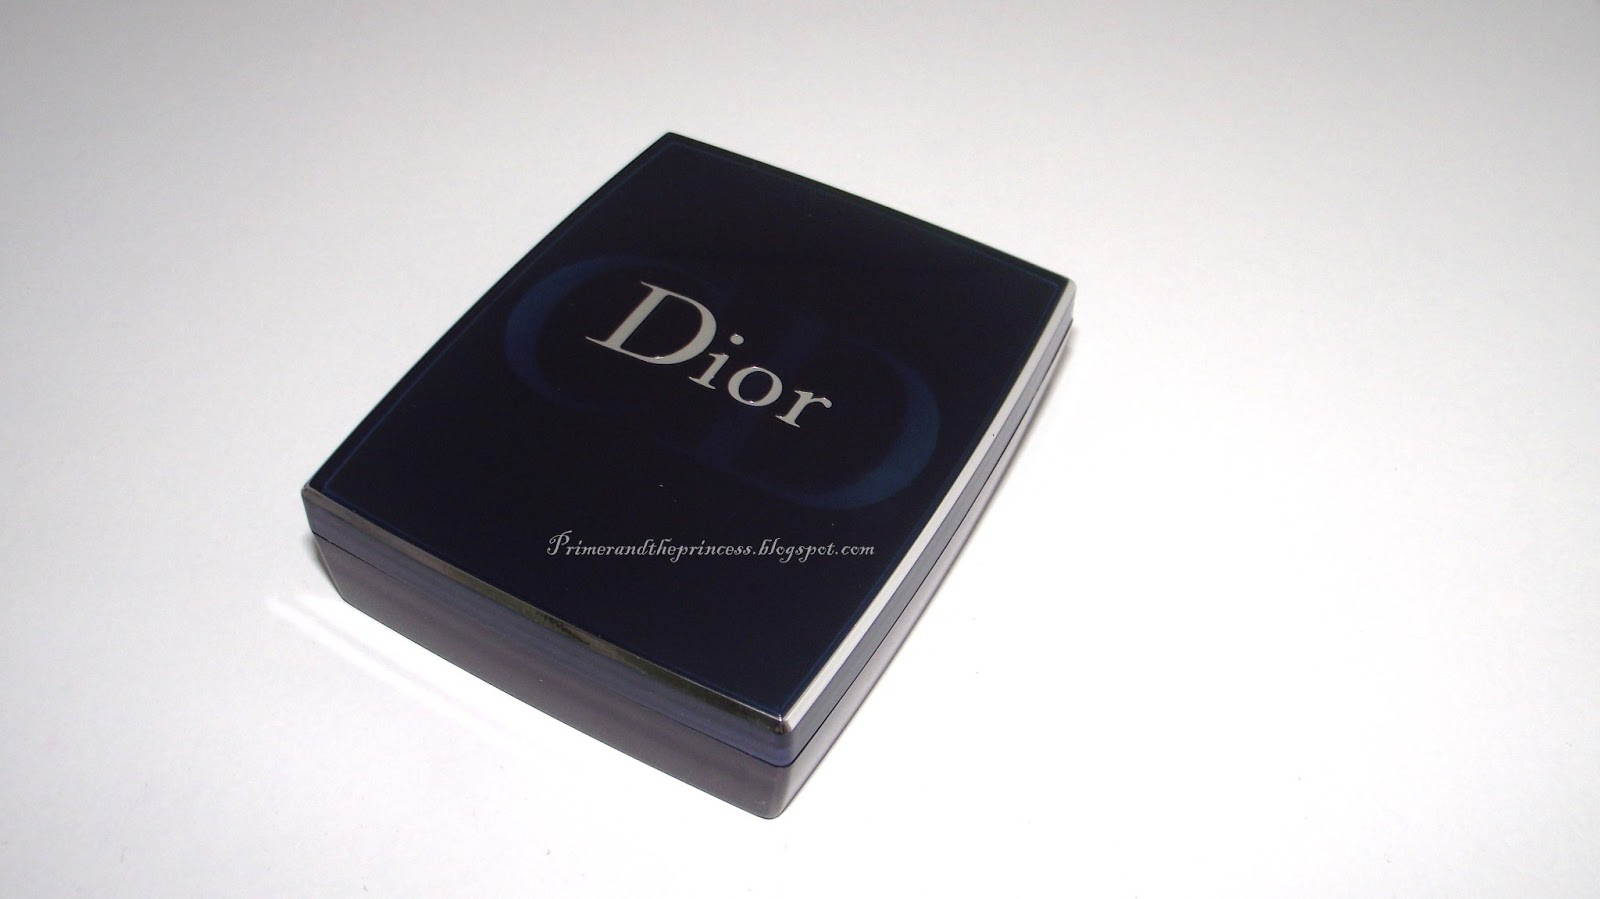 Dior 3 Couleurs Eye shadow Palette Cherie Bow Spring Collection 2013 - 731 Smoky Rose